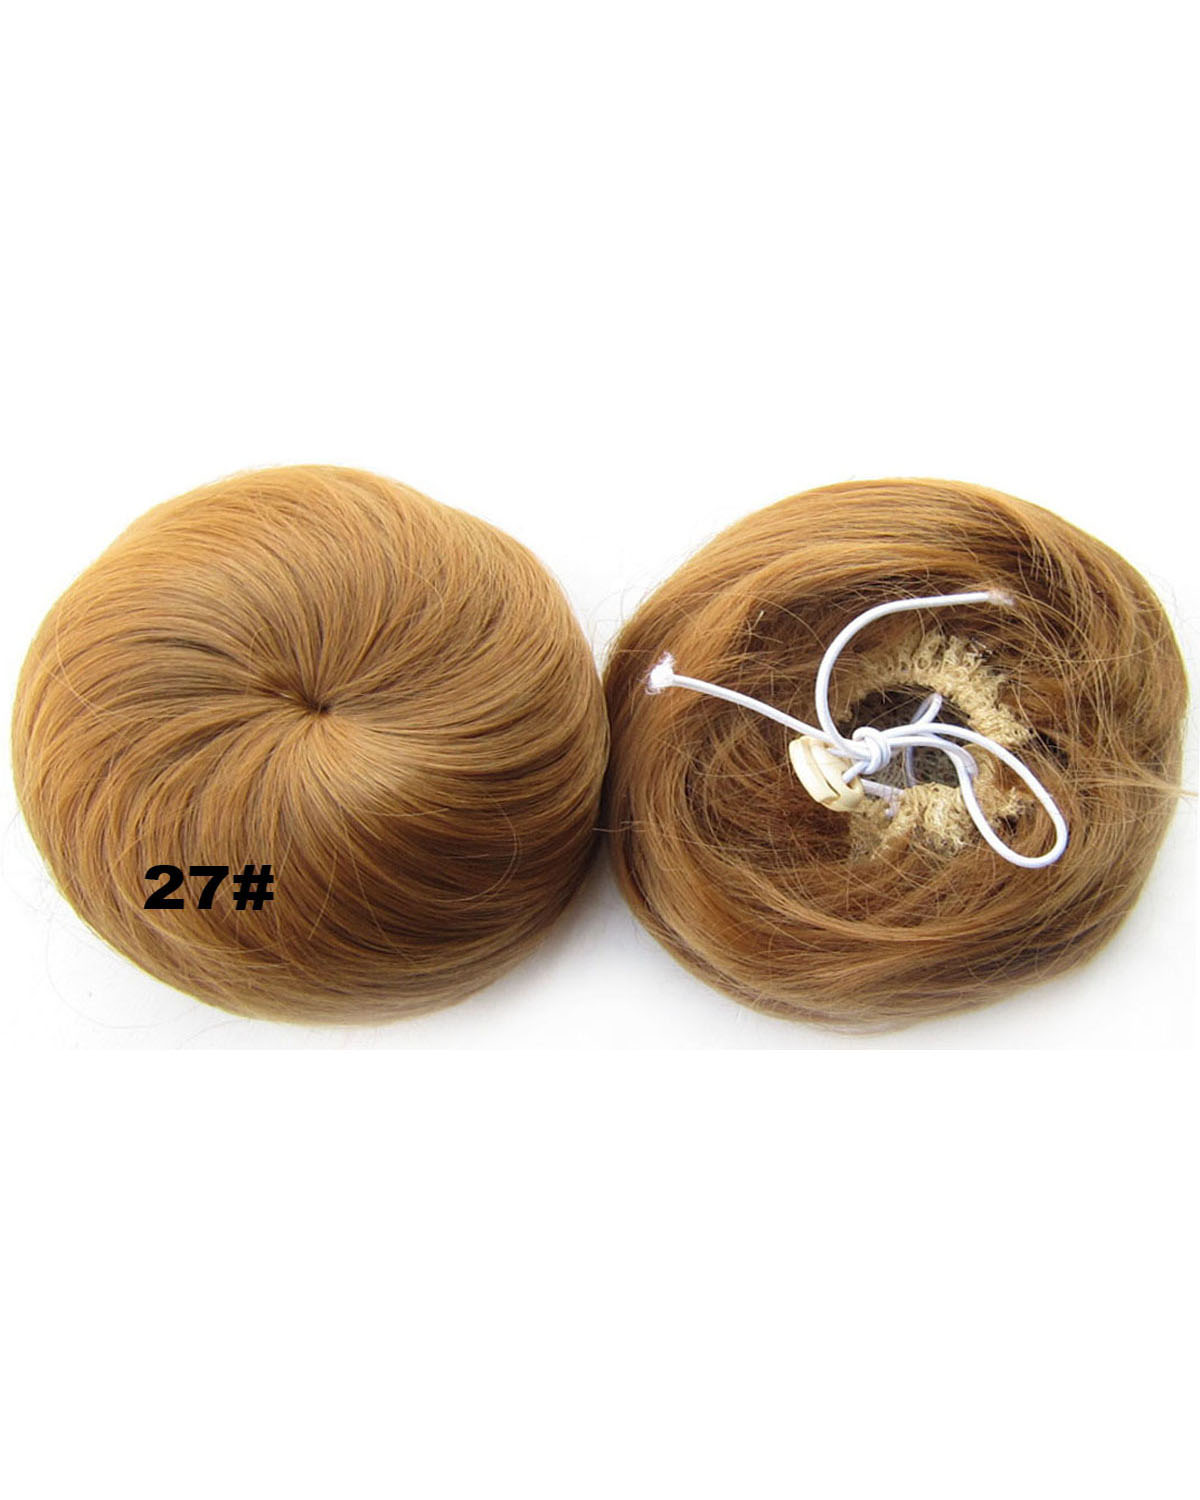 Ladies Excellent Curly and Short Hair Buns Drawstring Synthetic Hair Extension Bride Scrunchies 27#